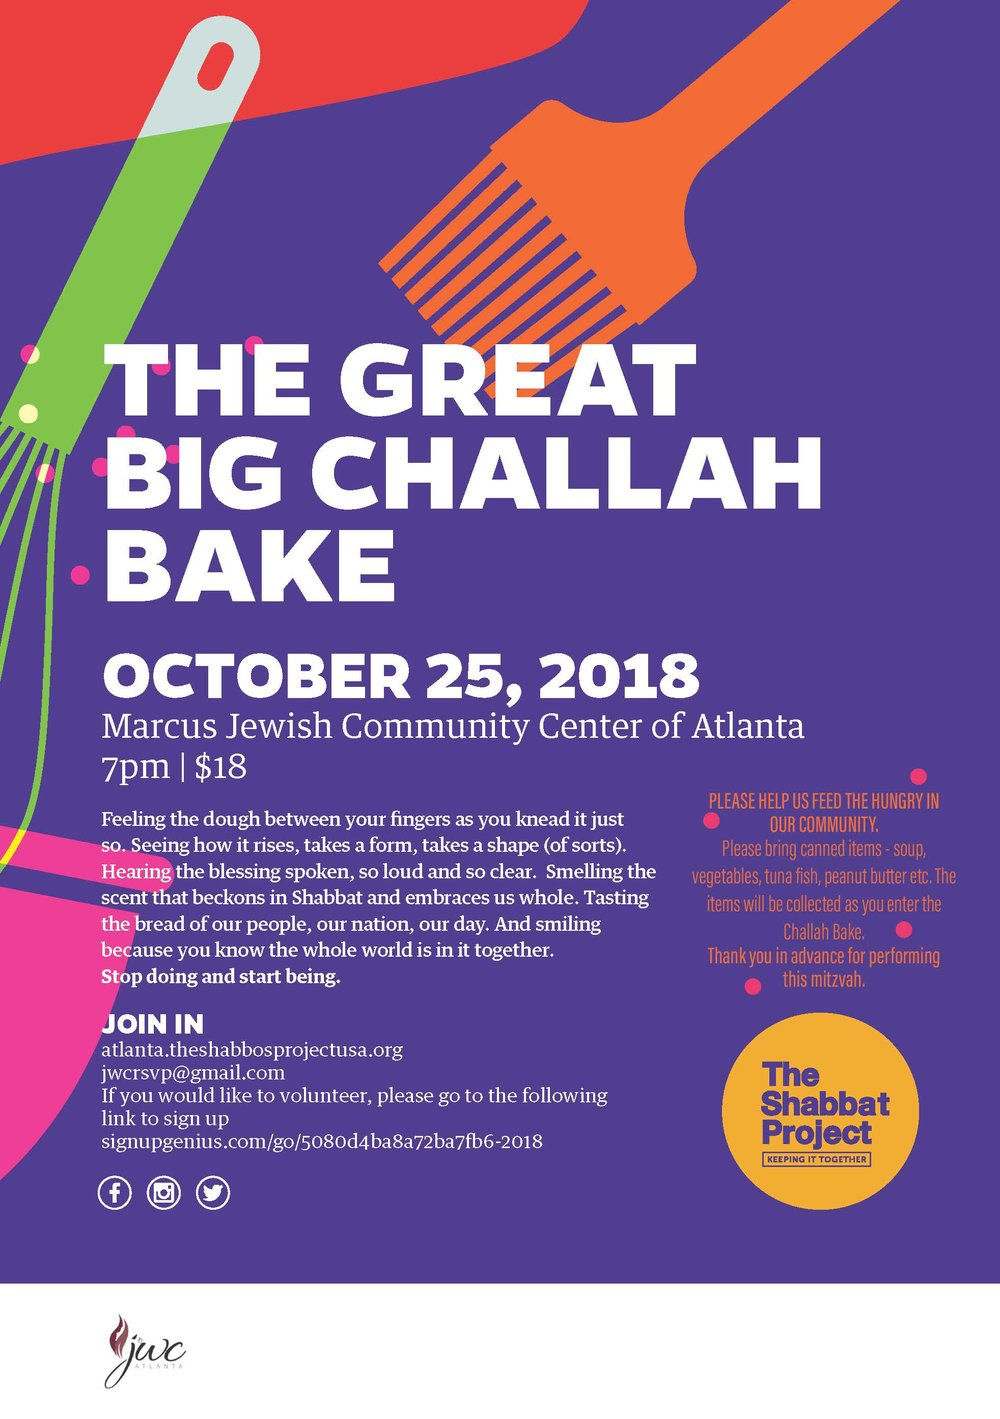 challah bake with new info.jpg